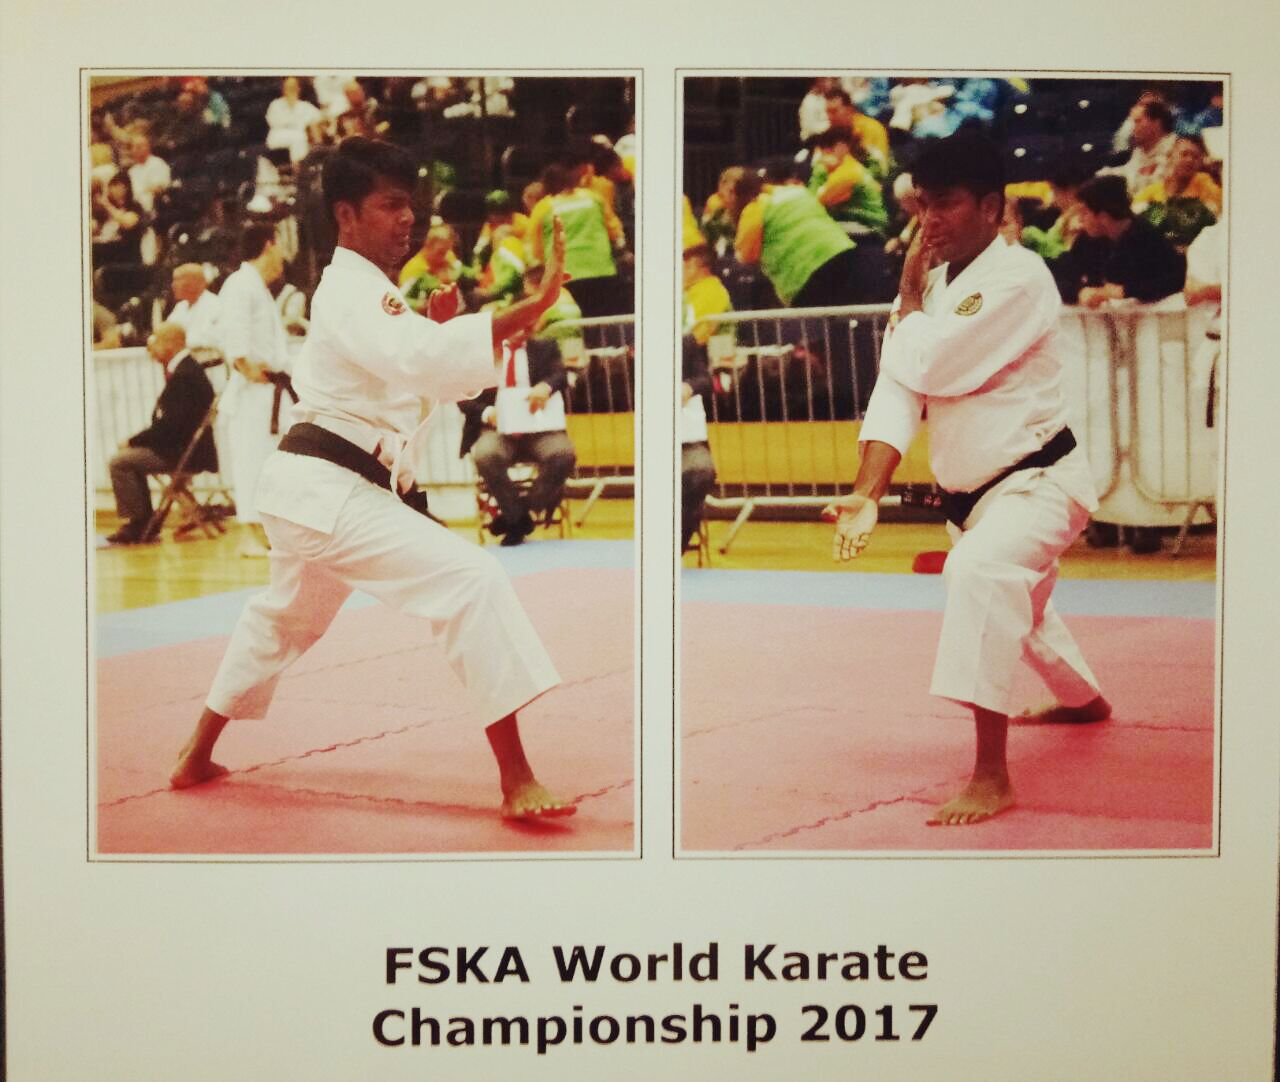 Ameya a young karateka from WeSchool wins Gold medal at the 19th FSKA World Karate Championship 2017